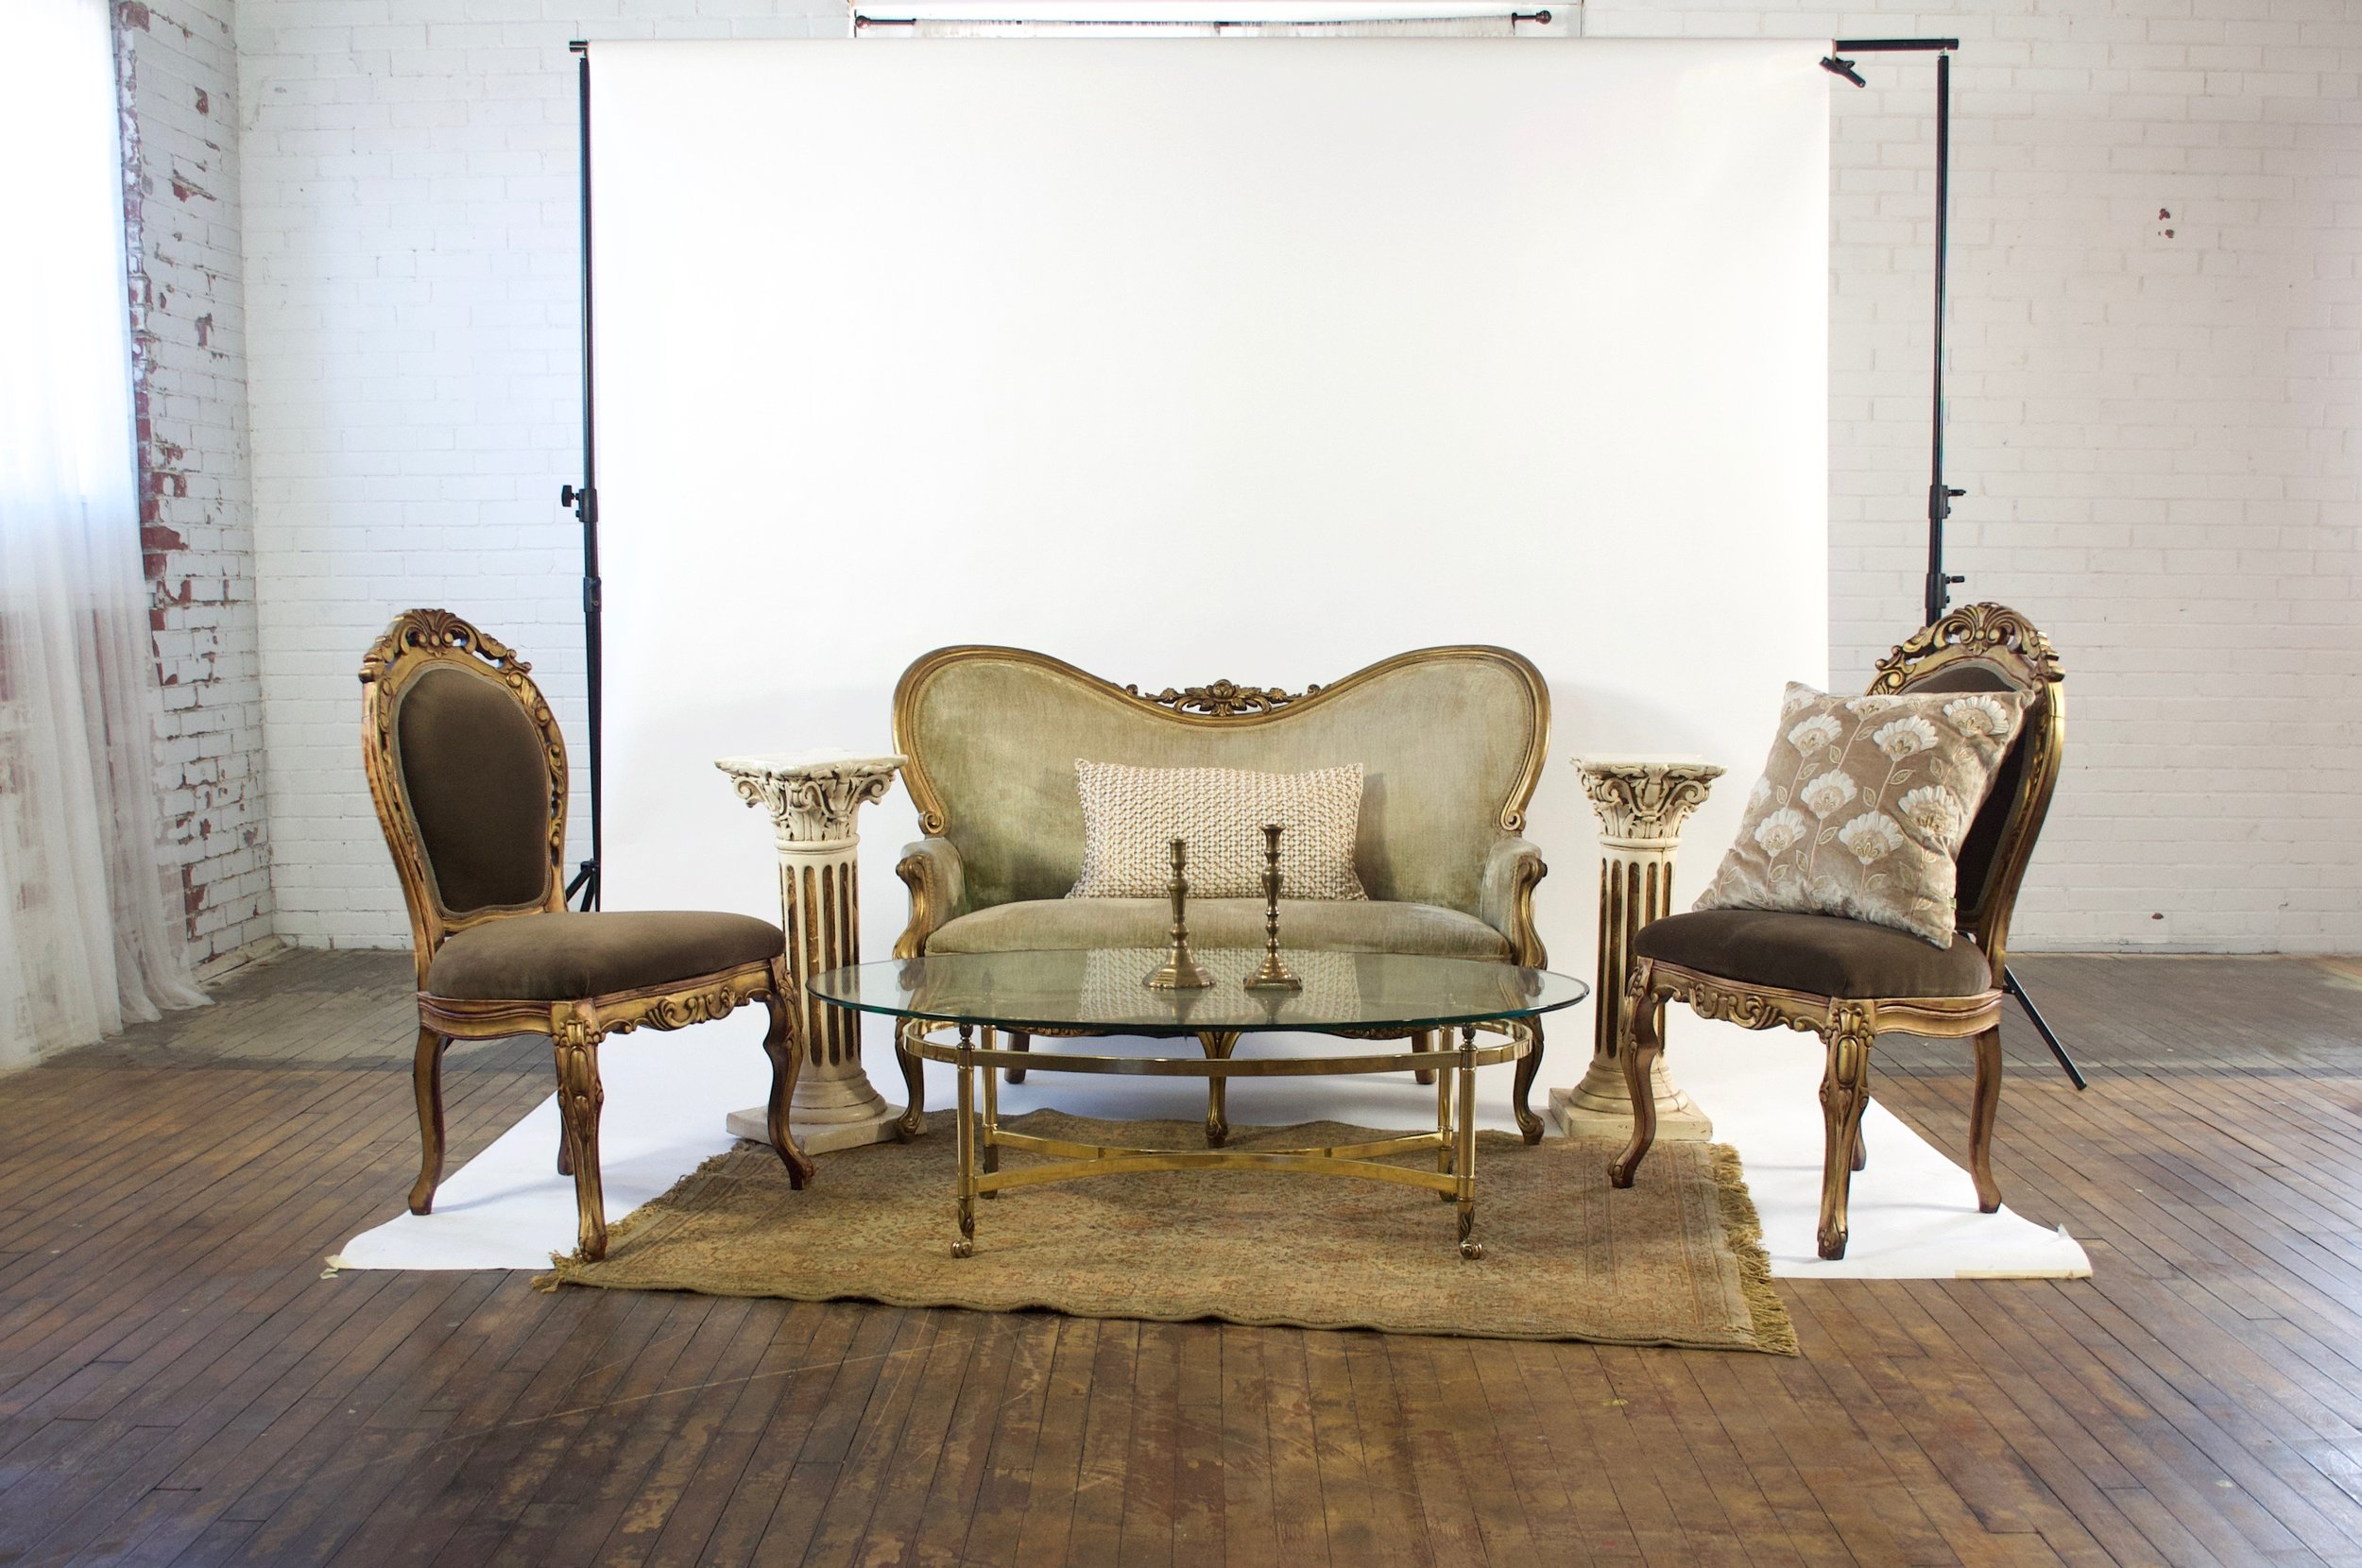 Goldie and Duren Demi - featuring beige rug, oval glass and gold table, and twin pedestals